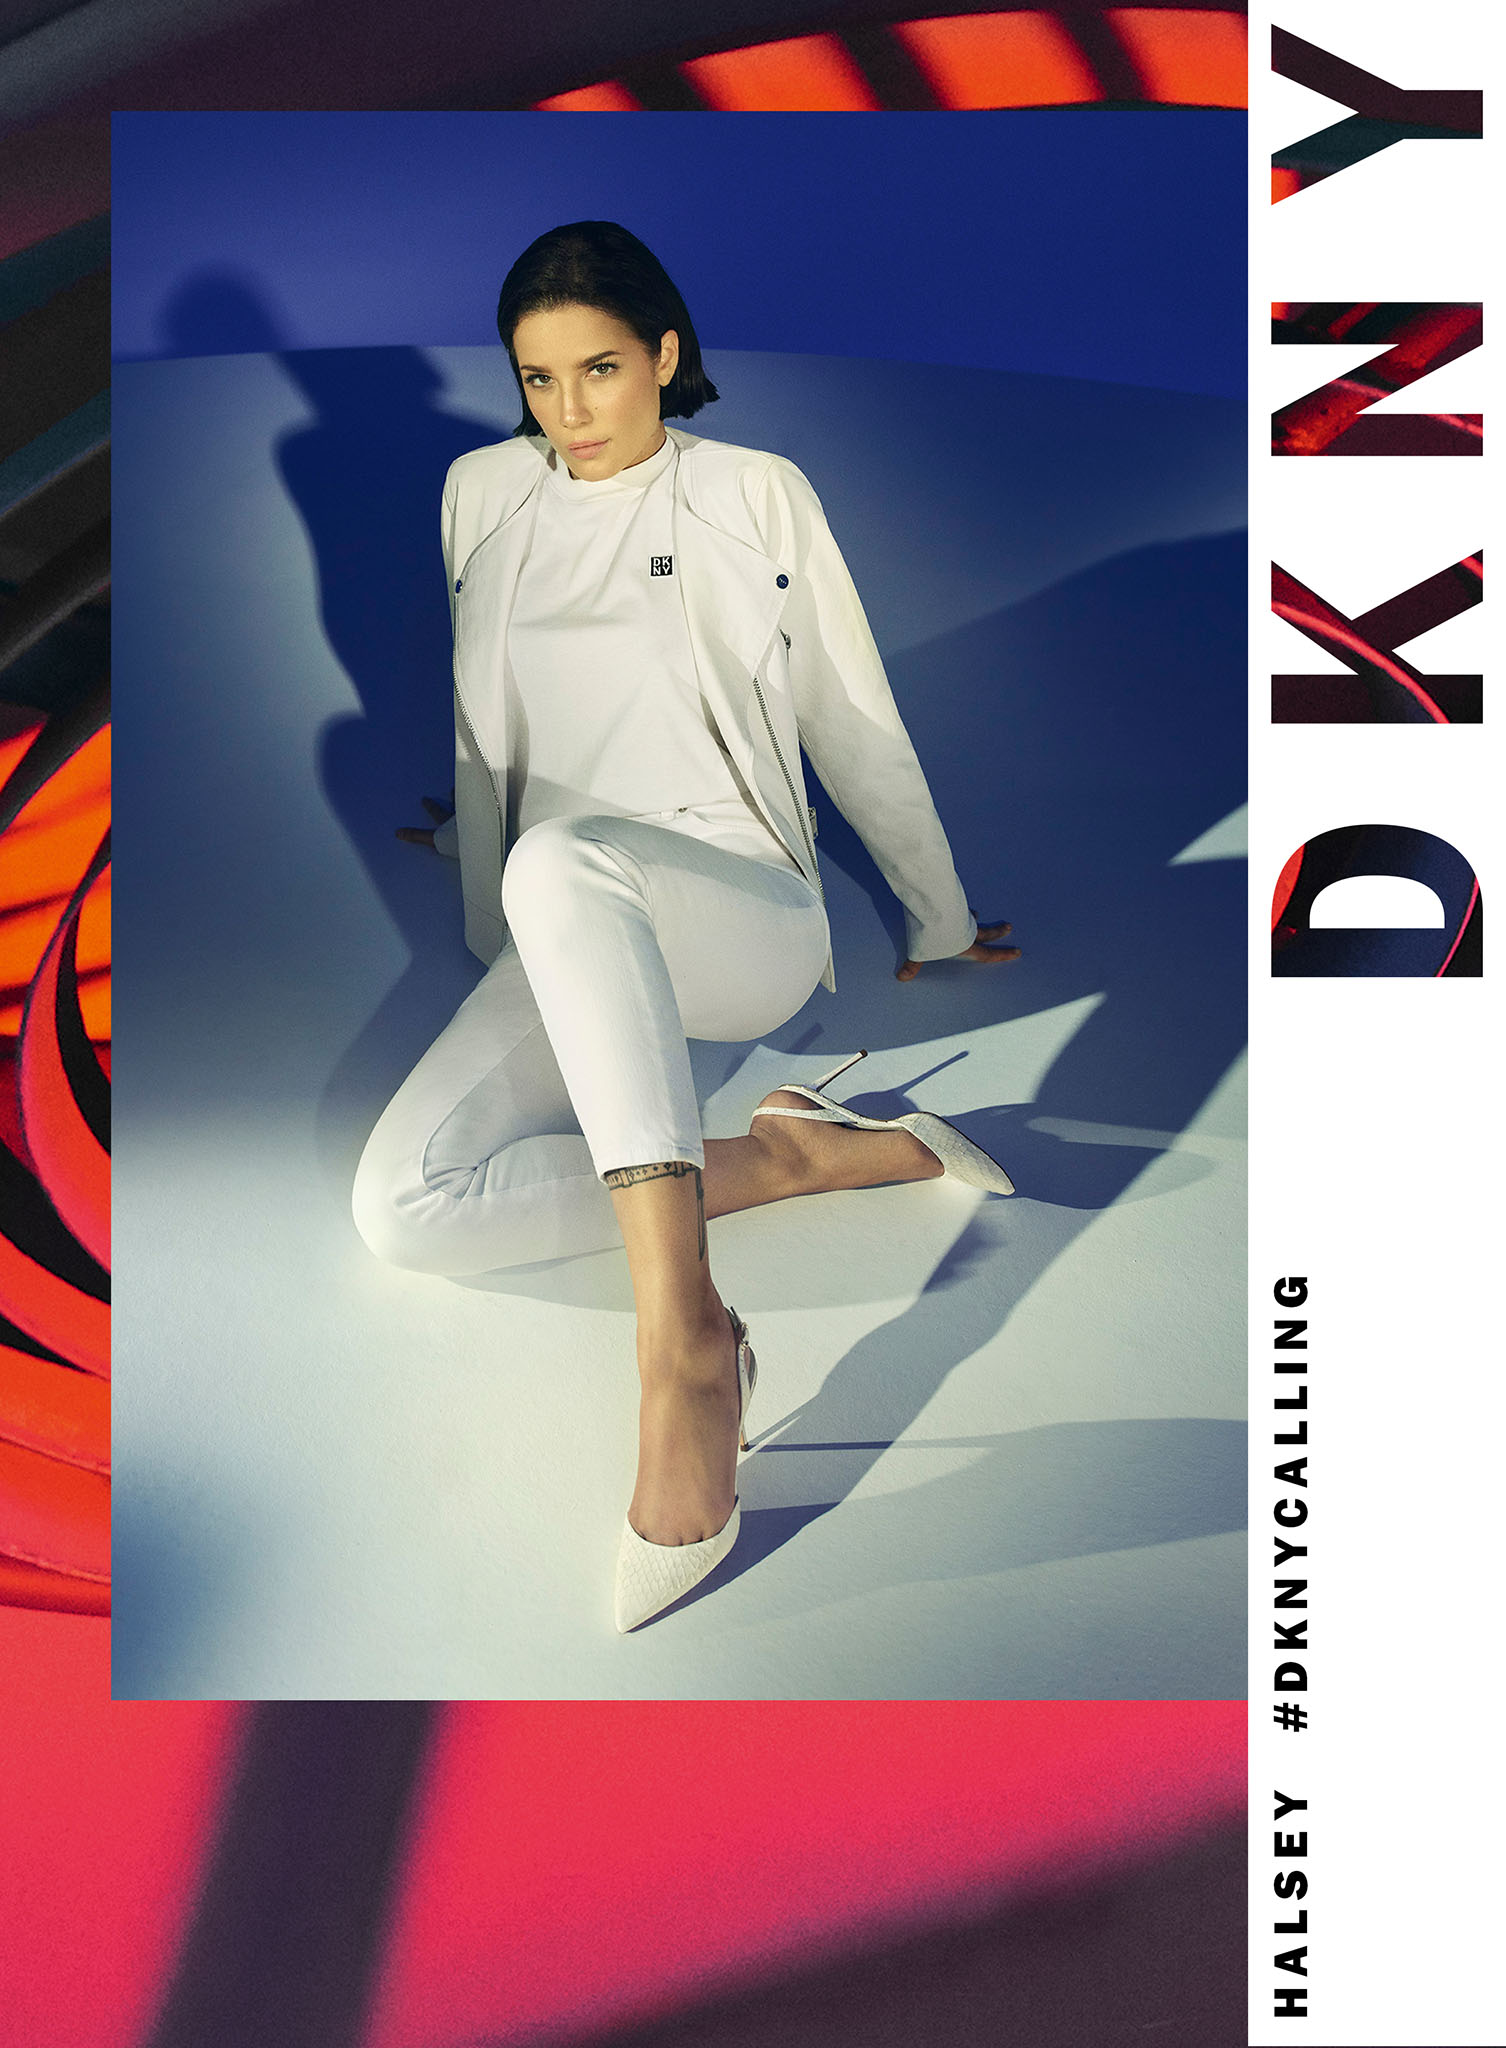 Halsey will once again appear in DKNYs campaign. Photographed by Zoey Grossman and styled by Zoe Costello, the spring campaign uses the New York City subway as a backdrop. Multimedia artist and model David Alexander Flinn is also featured in the ads. Videography was done by Nathalie Canguilhem. The dream-like hues of the campaign pay homage to New York City's drive to dream big and change the world. Ads, including video, break globally today and will appear on paid social platforms and outdoor media in key global markets, including New York, Los Angeles, Miami, Chicago, London, Milan, Berlin, Frankfurt, Madrid, Barcelona, Dubai and Mexico City through April. — Lisa Lockwood